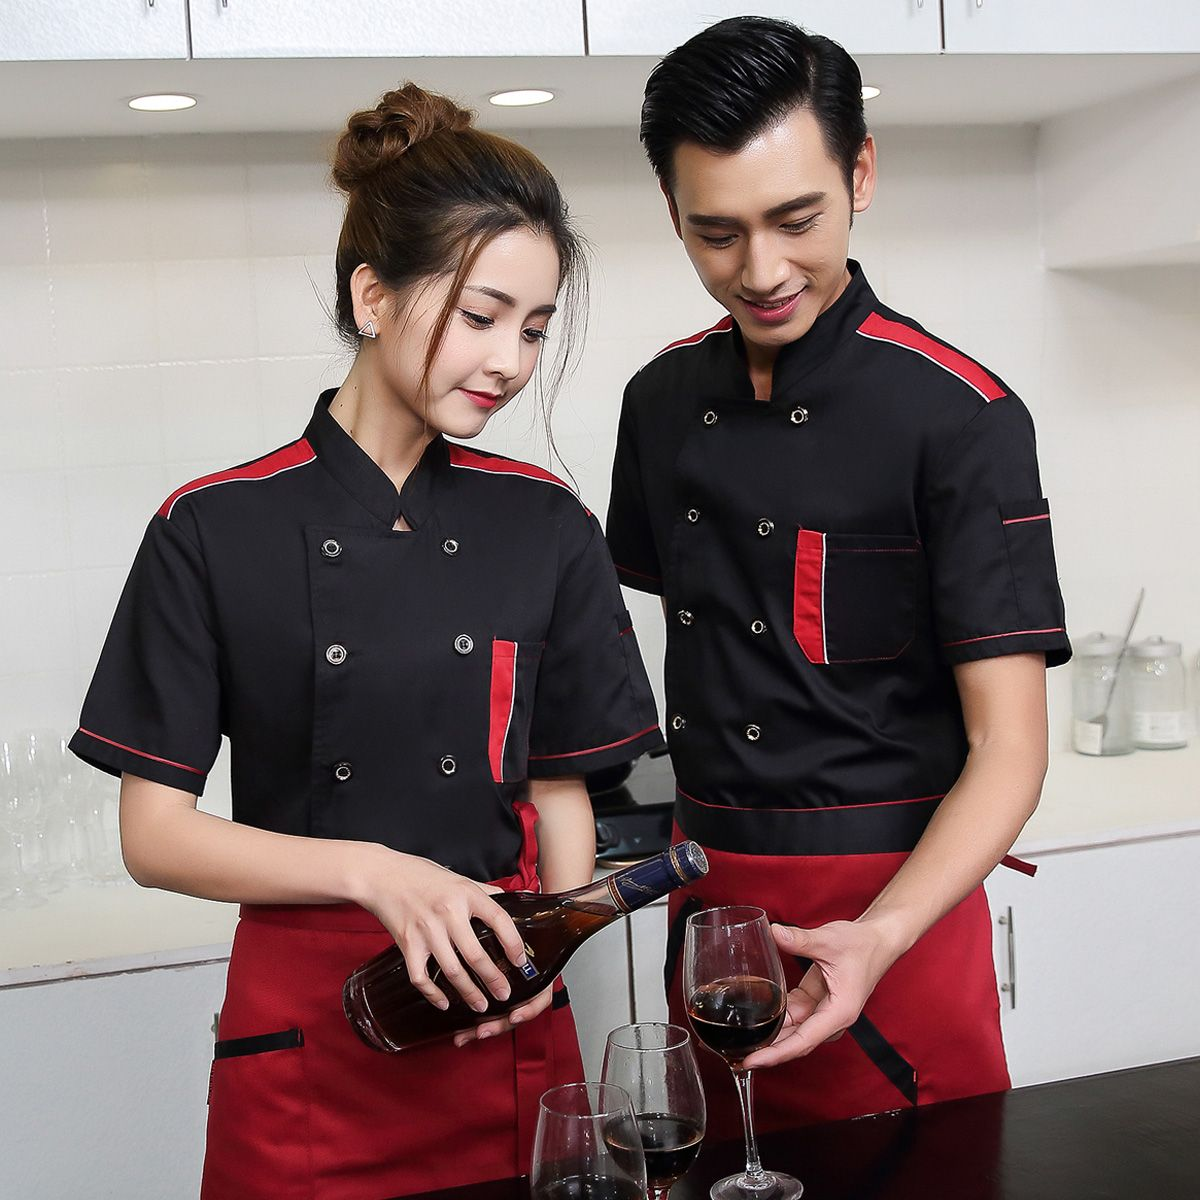 Restaurant Kitchen Uniforms chef wear short sleeved summer uniform hotel restaurant kitchen